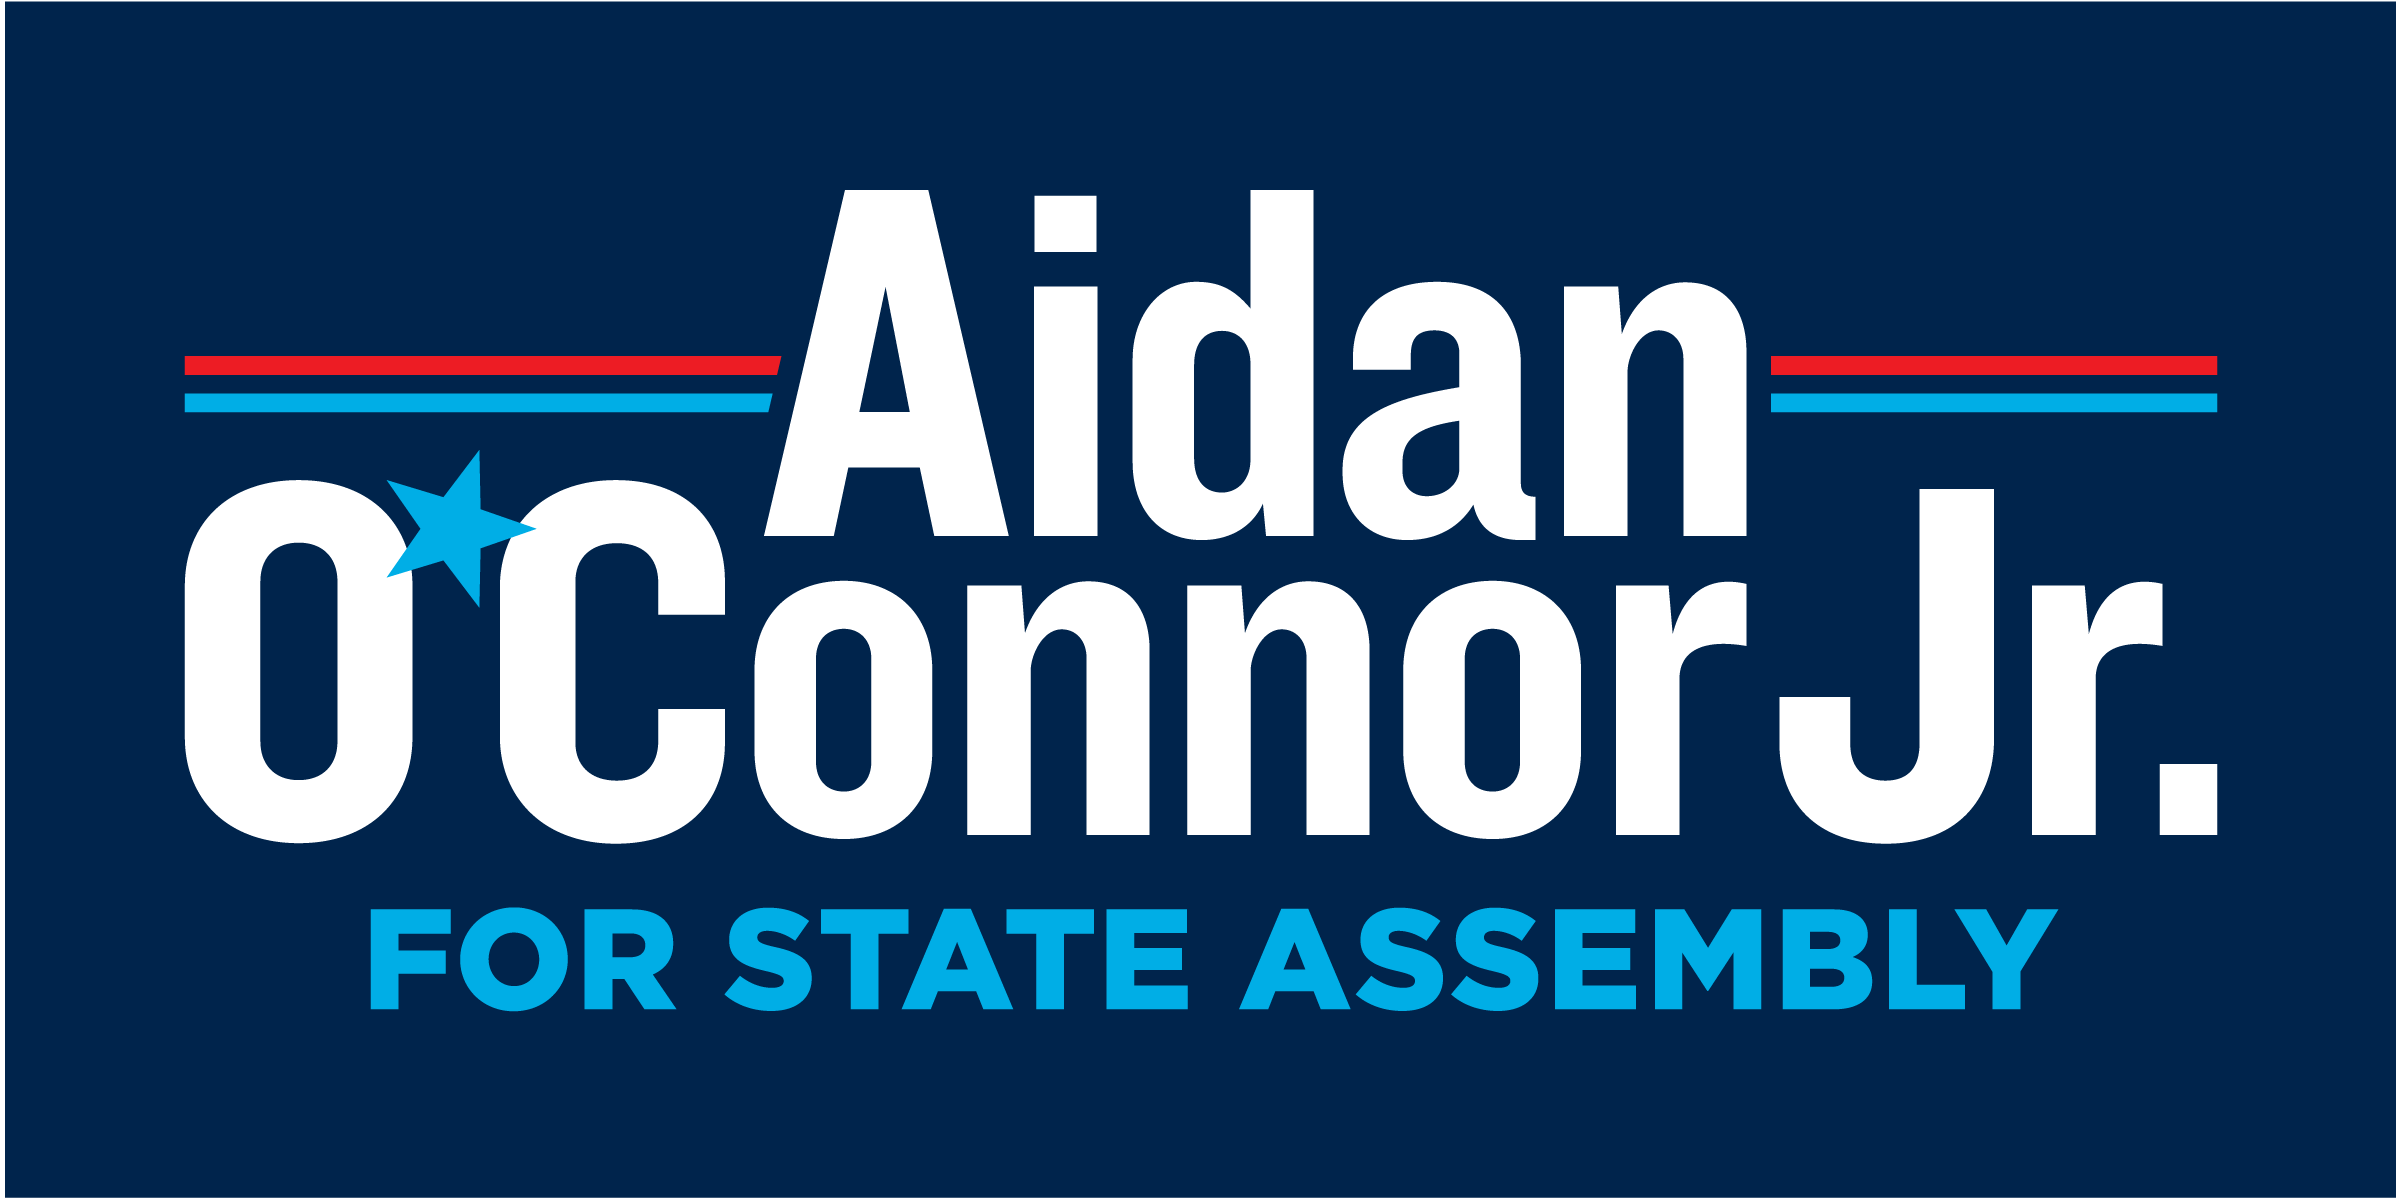 Oconnor2018-ad102-logo-primary-navy